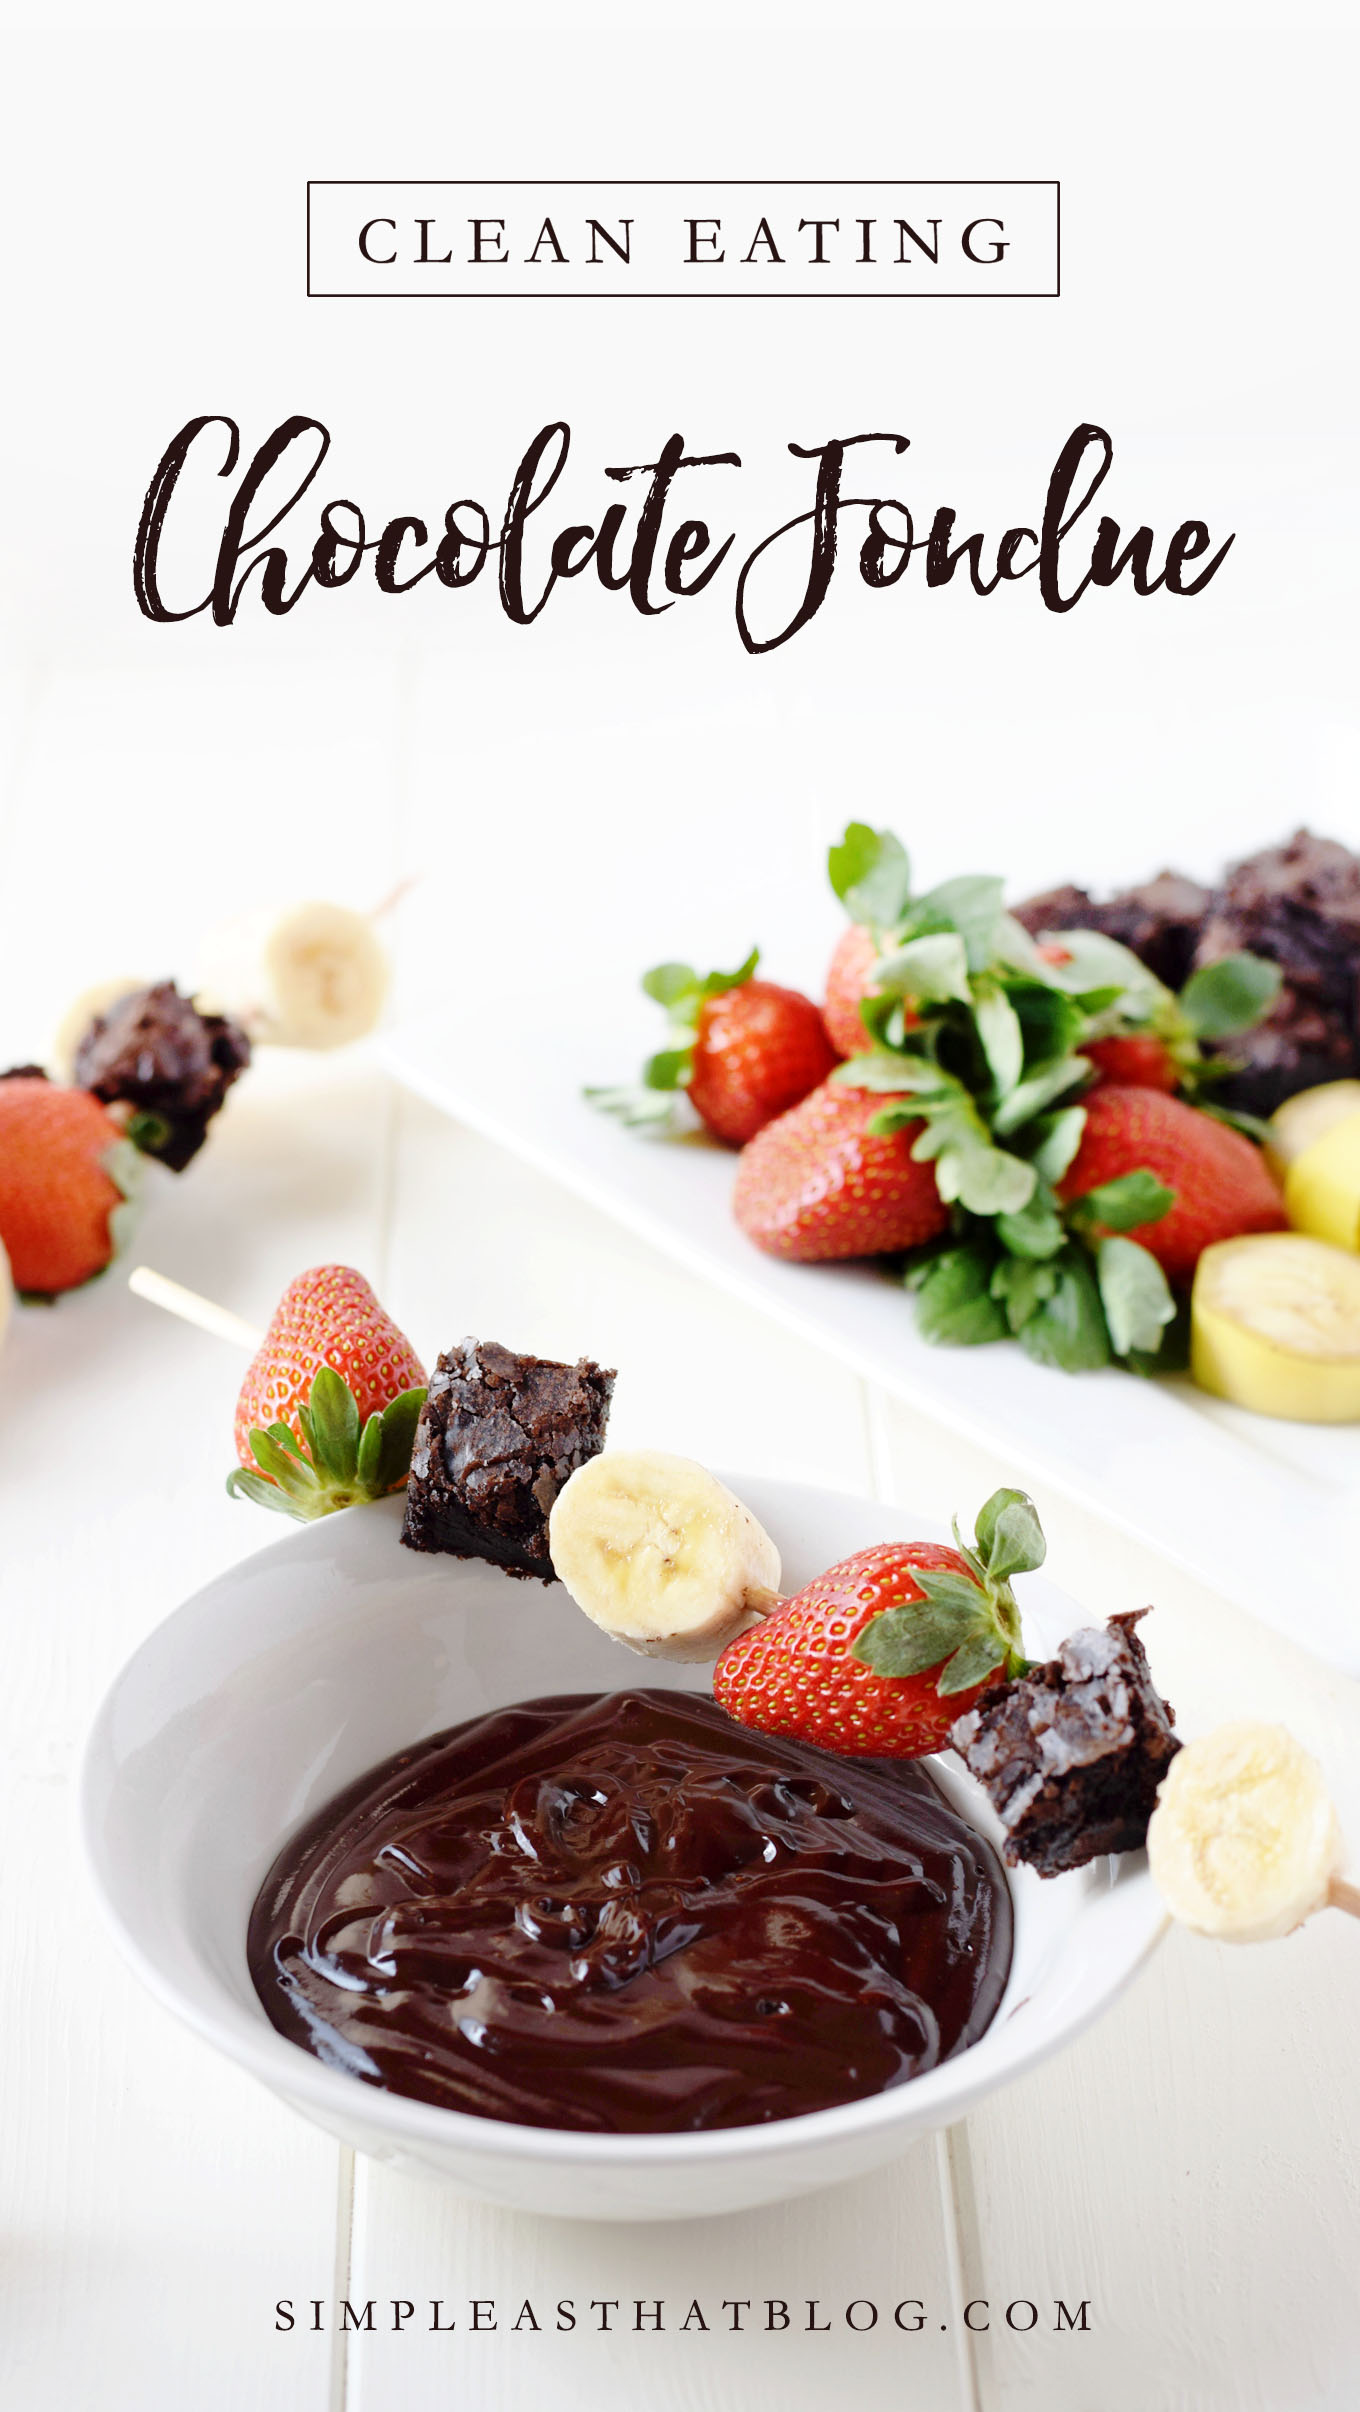 Clean Eating Chocolate Fondue - Looking for a healthier Valentine's Day treat the whole family will love? This clean eating dessert is going to be a new favorite!